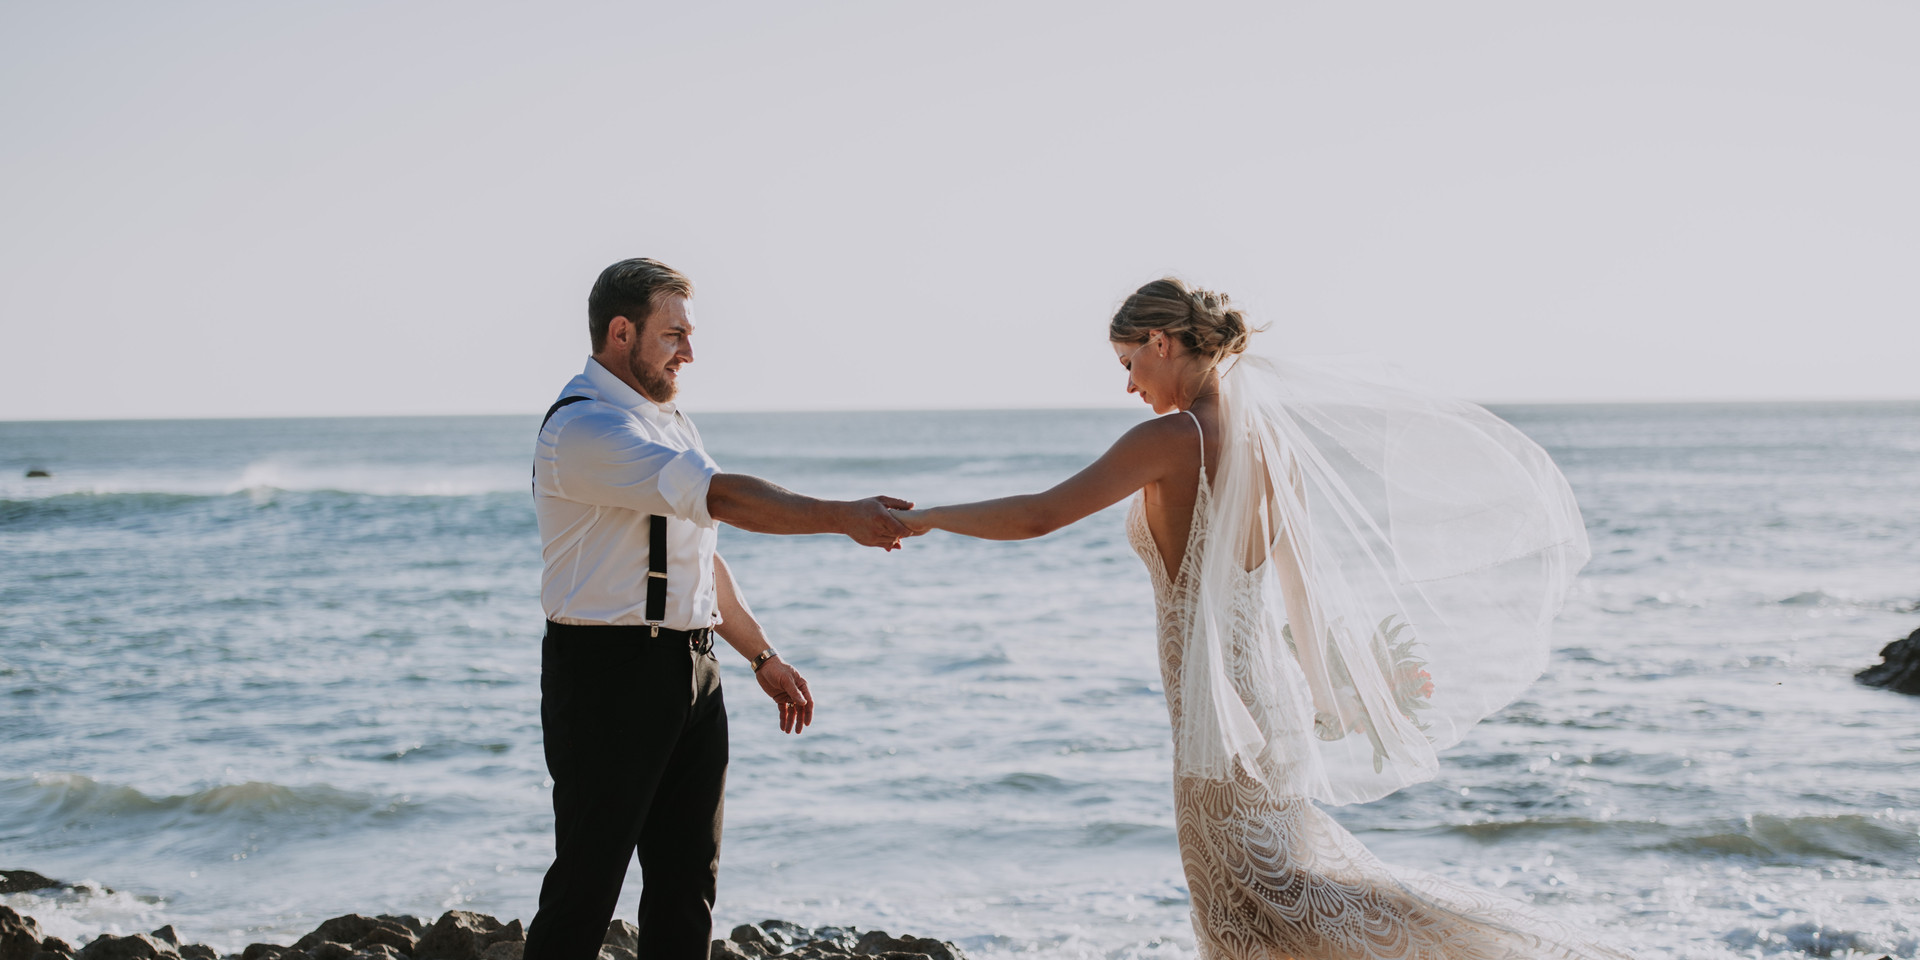 Bride and Groom dancing on the beach Costa Rica